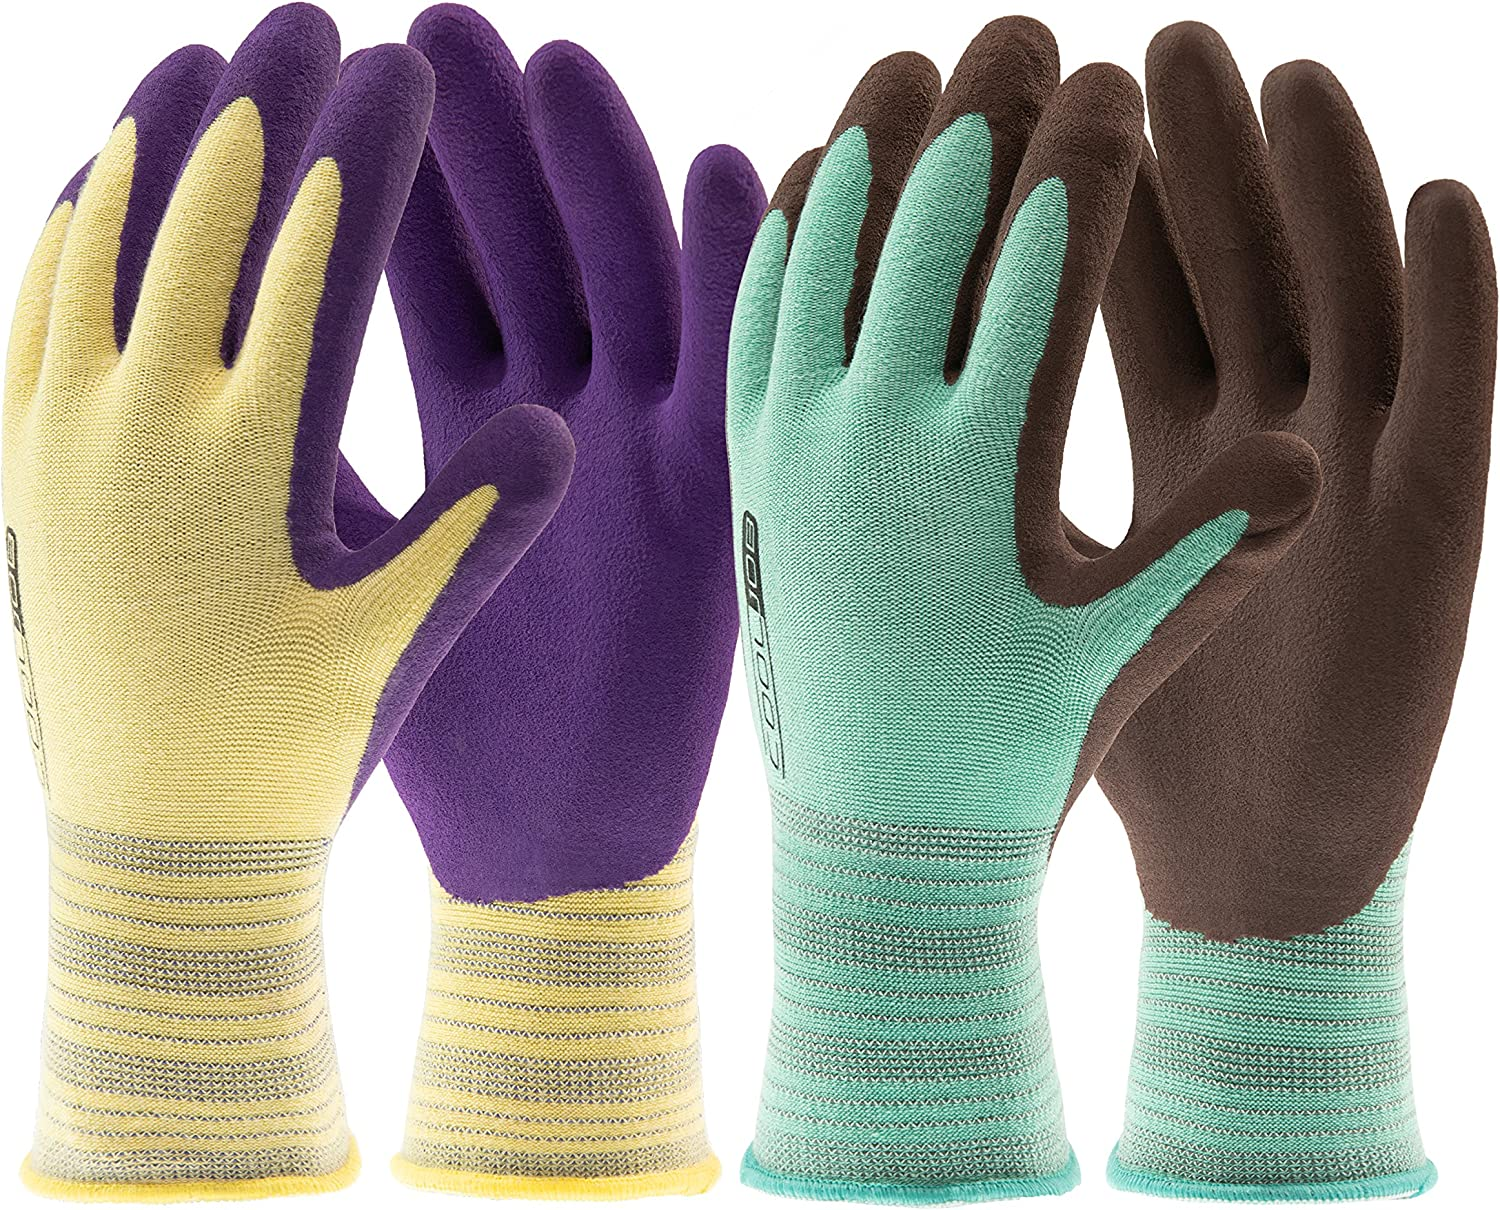 COOLJOB Gardening Gloves for Woman and Men, 2 Pairs Grippy Rubber Coated Working Gloves for Garden, Yard, Weeding, Landscaping, Palm Width 3.25 Inches, Yellow & Green, Extra Small (2 Pairs XS)